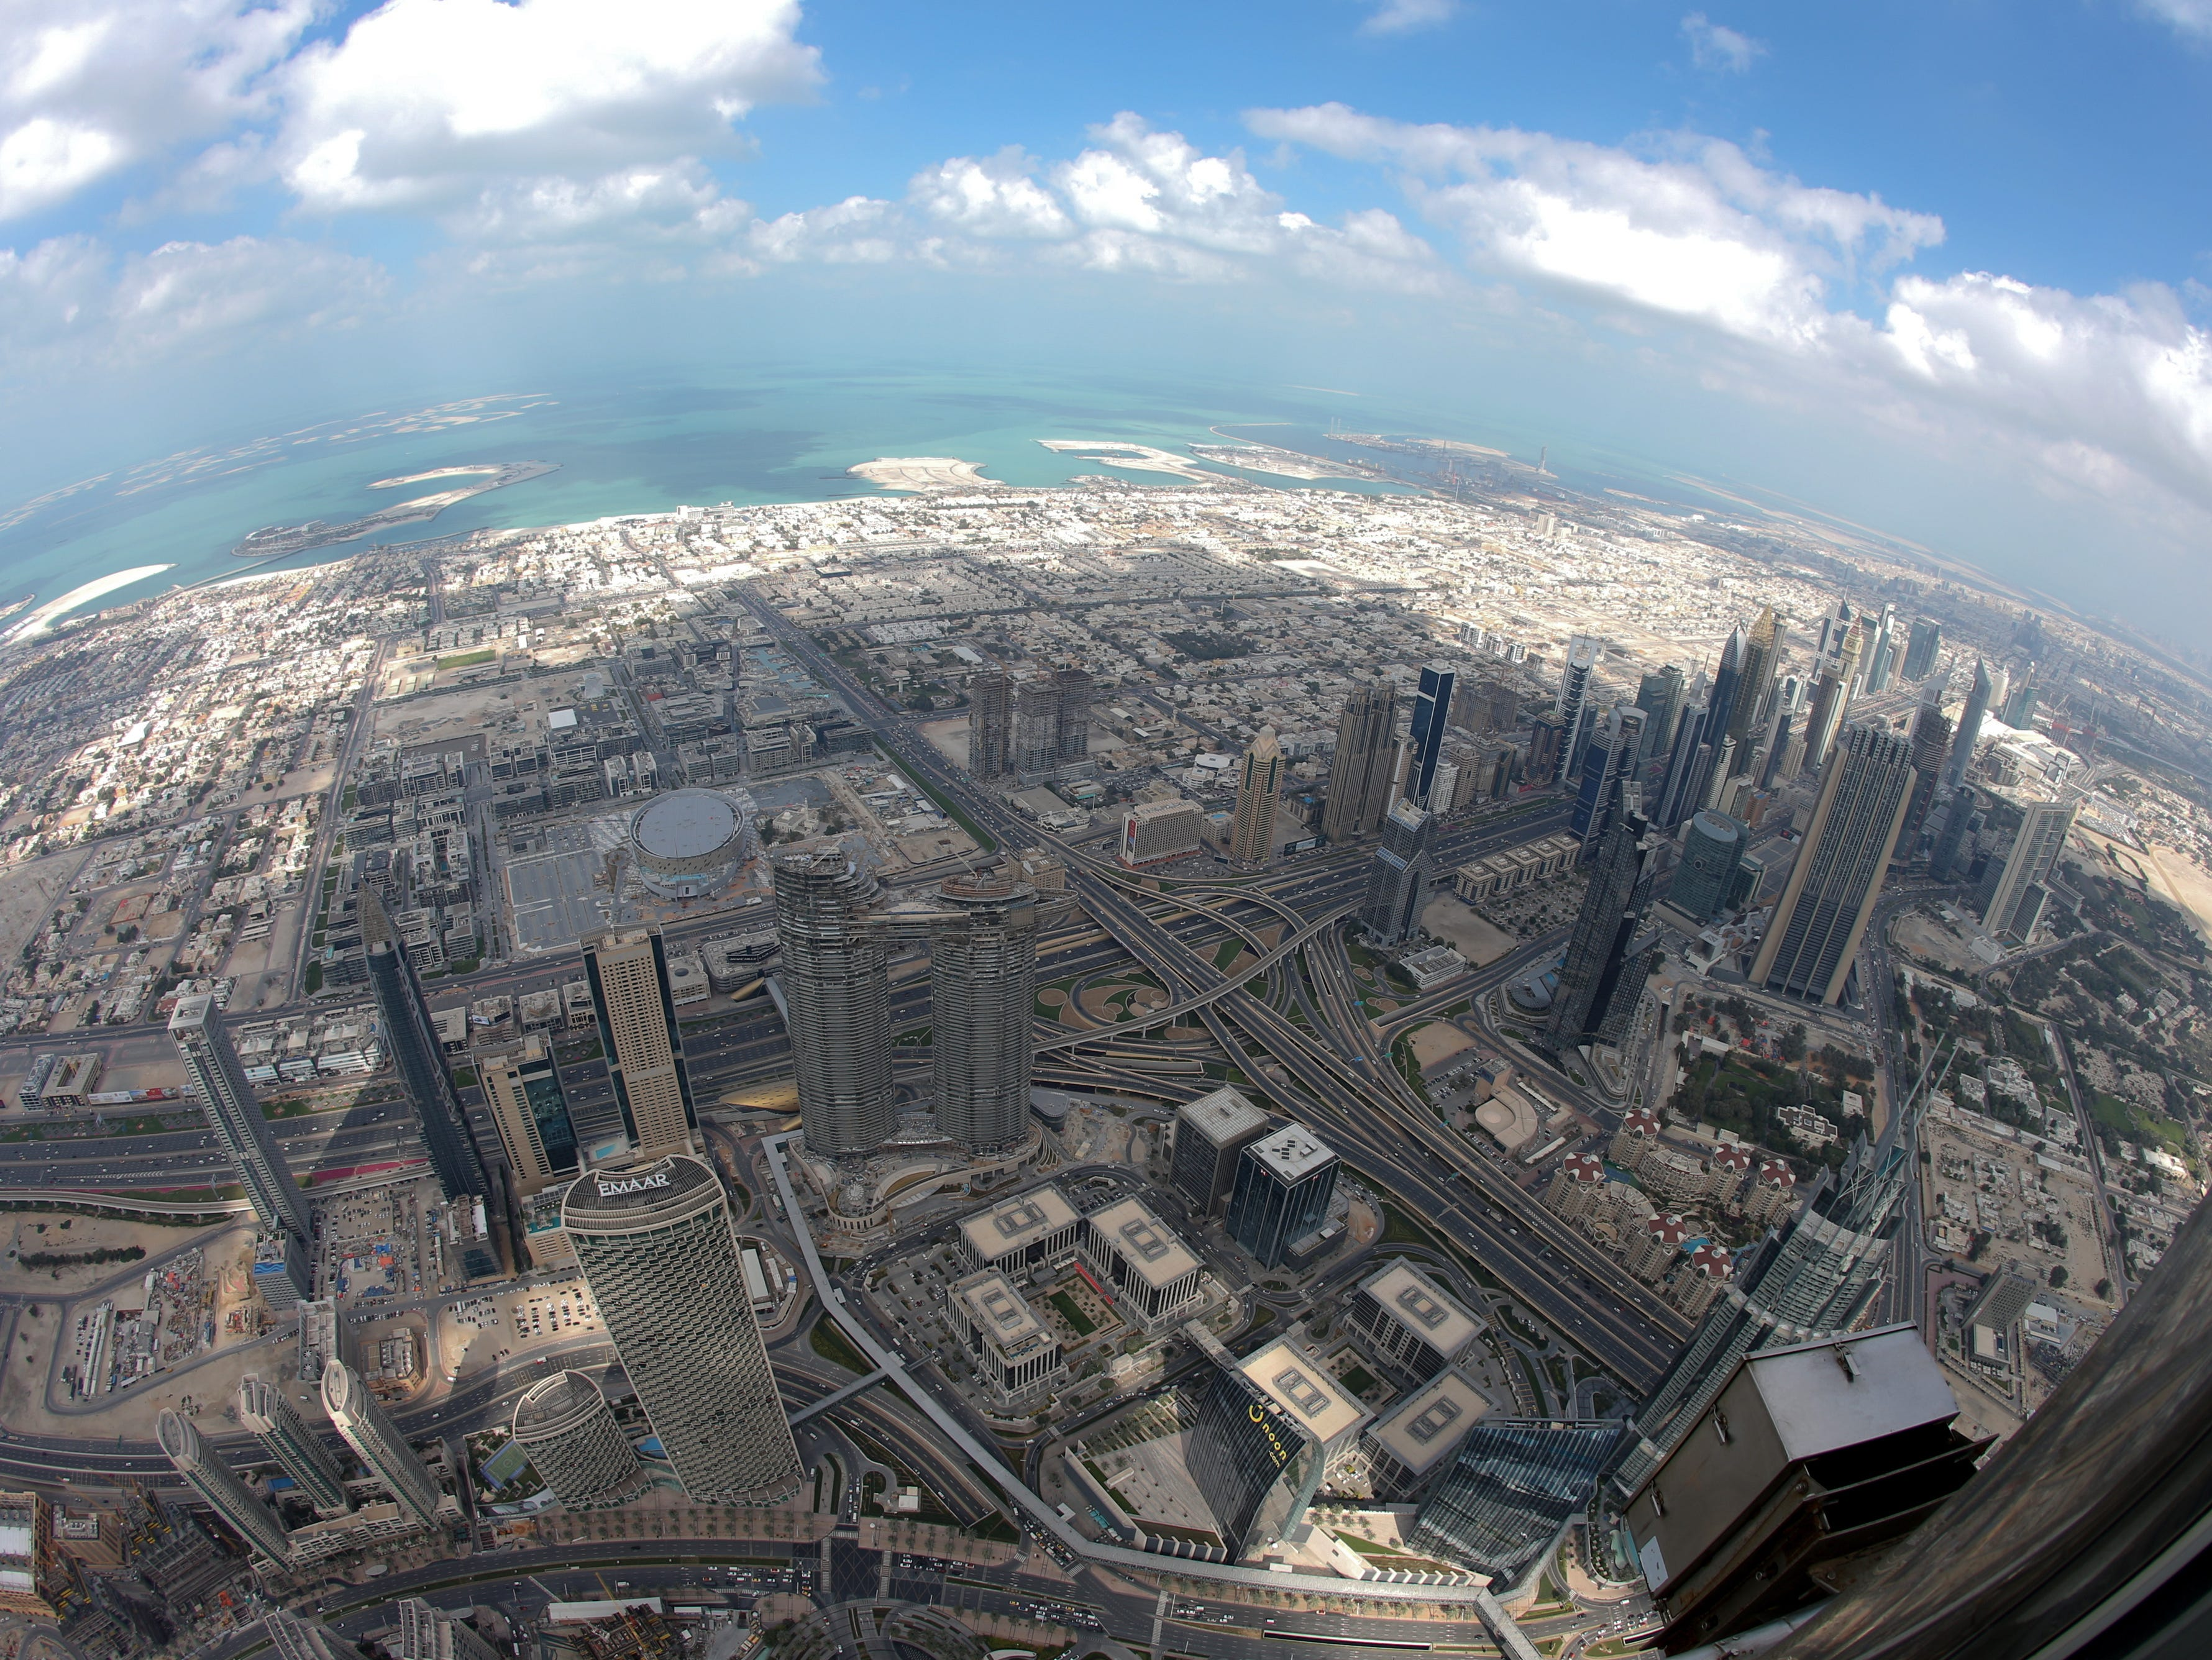 epa07367626 A picture taken with a fisheye lens shows areas close to the world's tallest building Burj Khalifa as seen from the the new highest lounge in the world at Burj Khalifa in Dubai, United Arab Emirates, 13 February 2019. Ahmad Al Falasi, Executive Director Emaar Properties announced during media briefing the opening of highest lounge in the world at Burj Khalifa located on the 152, 153, and 154 floors at 575 metres, with each have its distinctive settings assuring never before seen views of the city.  EPA-EFE/ALI HAIDER ORG XMIT: XAH051